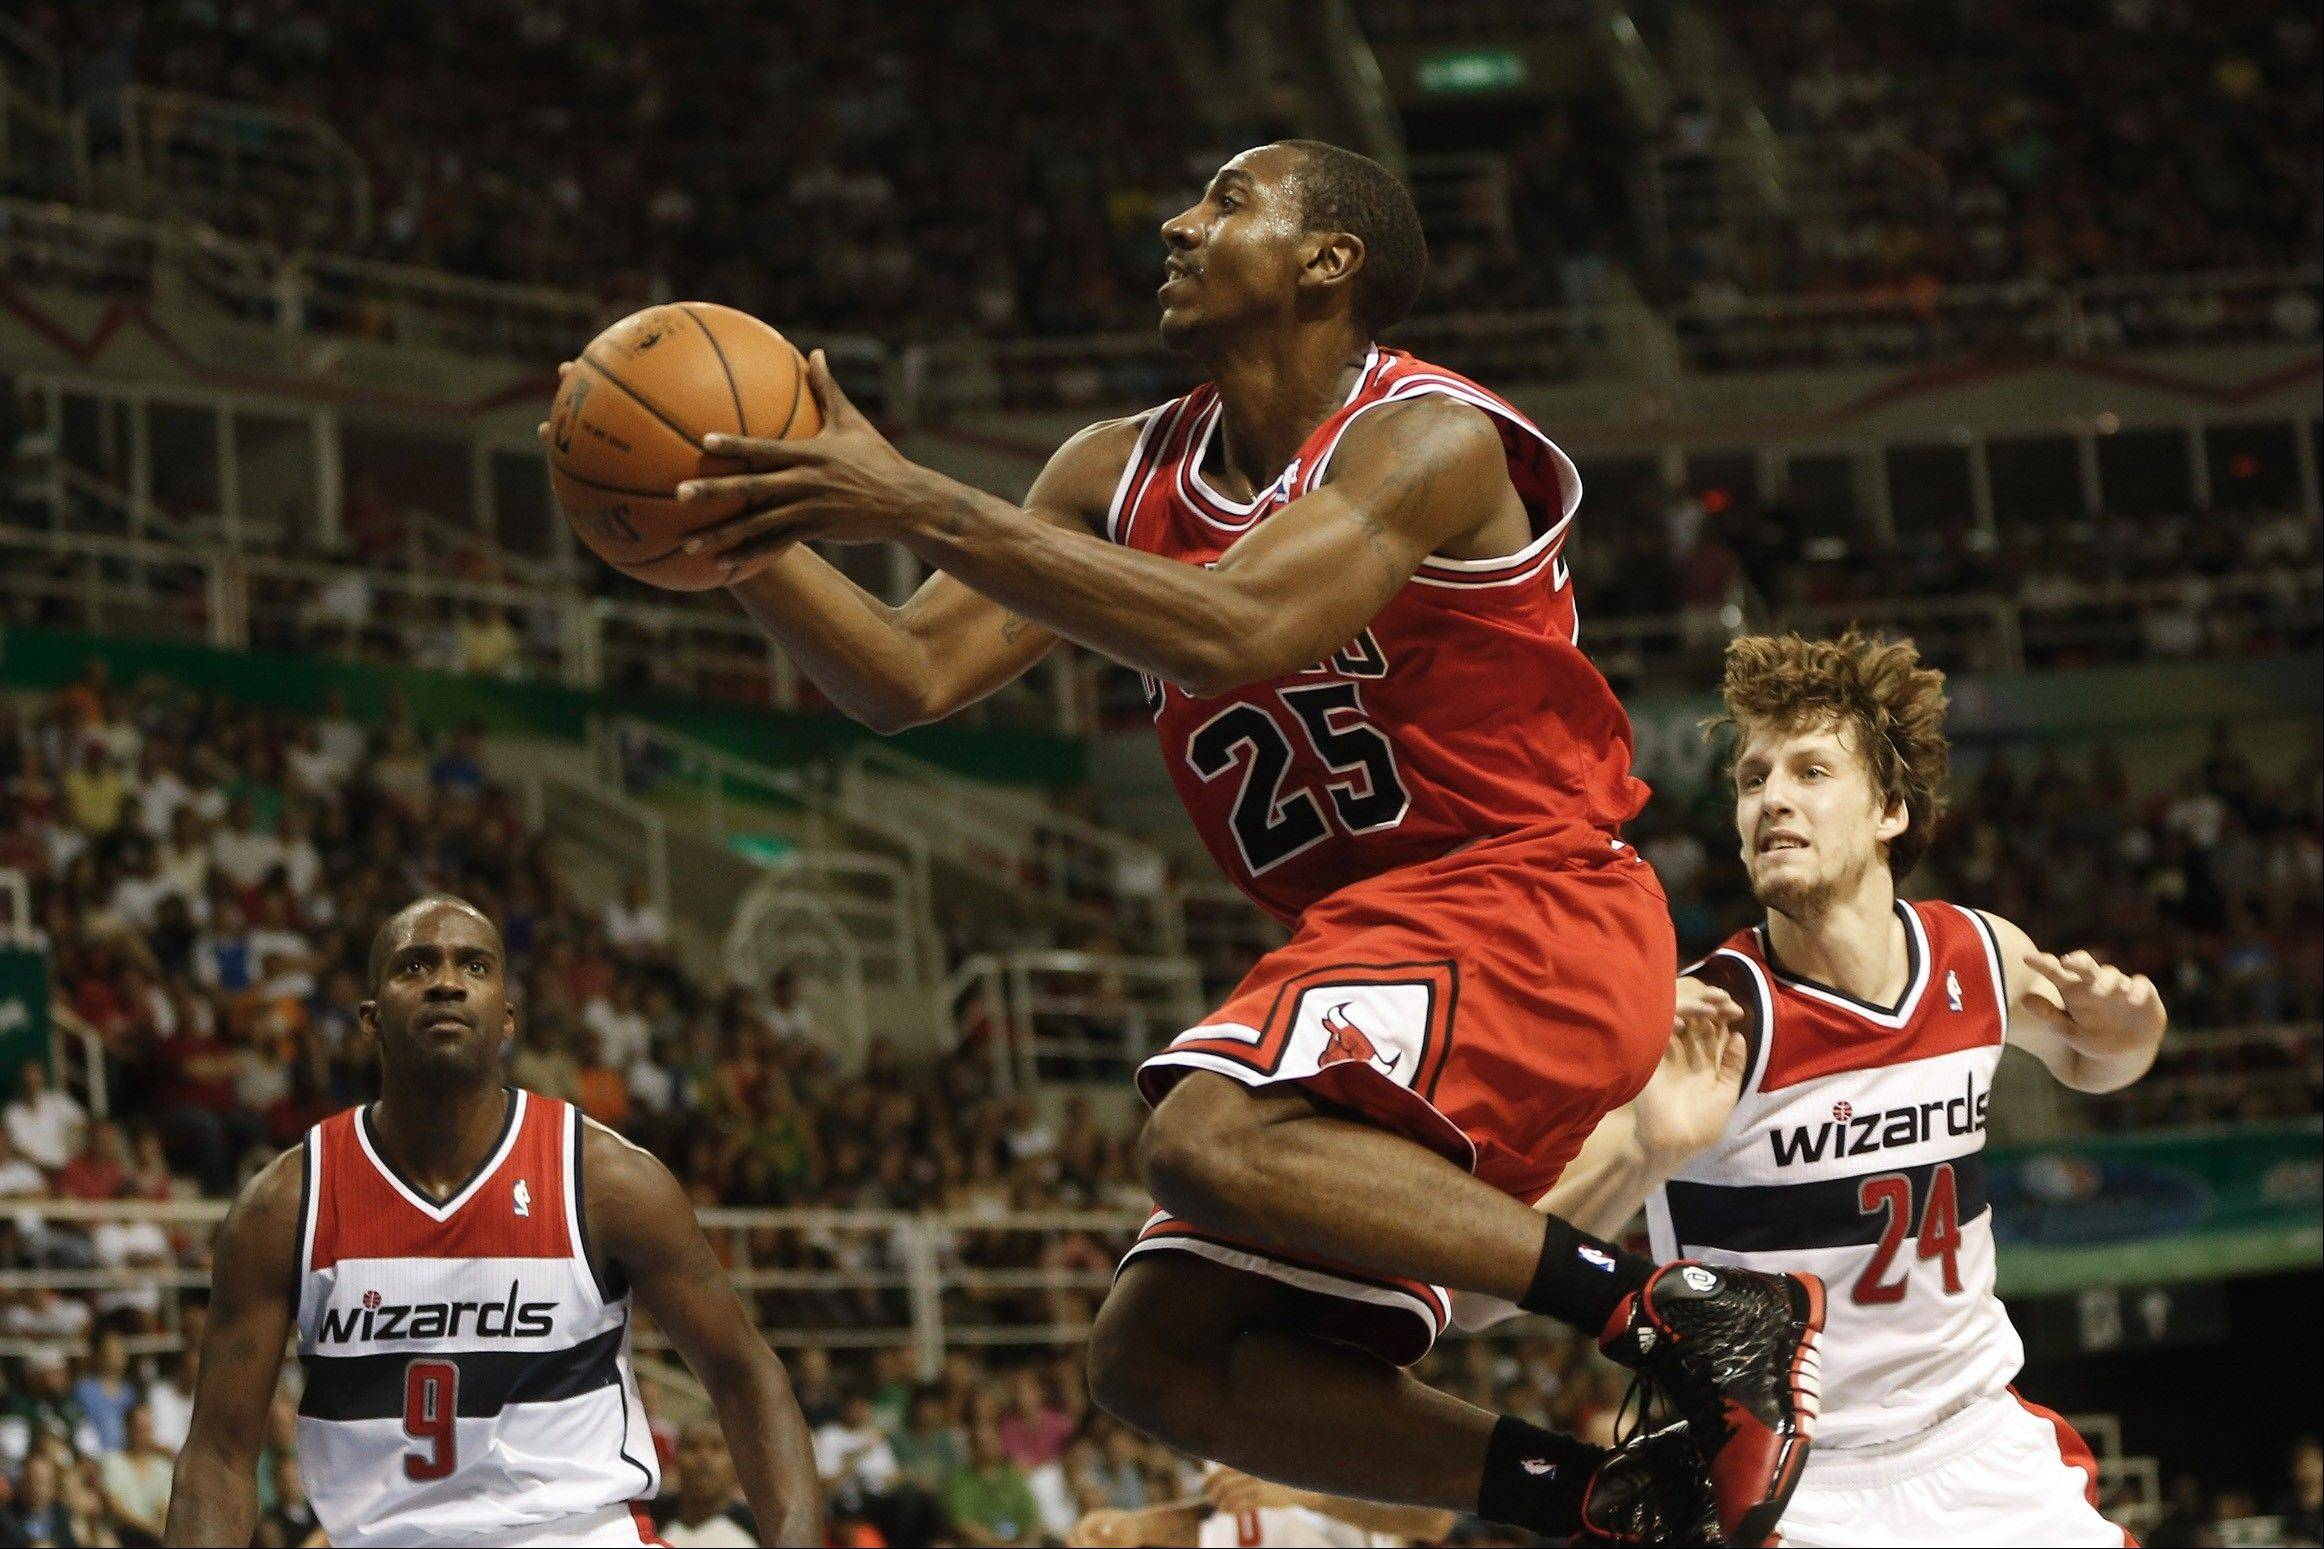 The Bulls� Marquis Teague, center, makes a move to the basket as Washington Wizards� Martell Webster, left, and Jan Vesely look on during the first half of an NBA preseason basketball game in Rio de Janeiro, Brazil, Saturday.